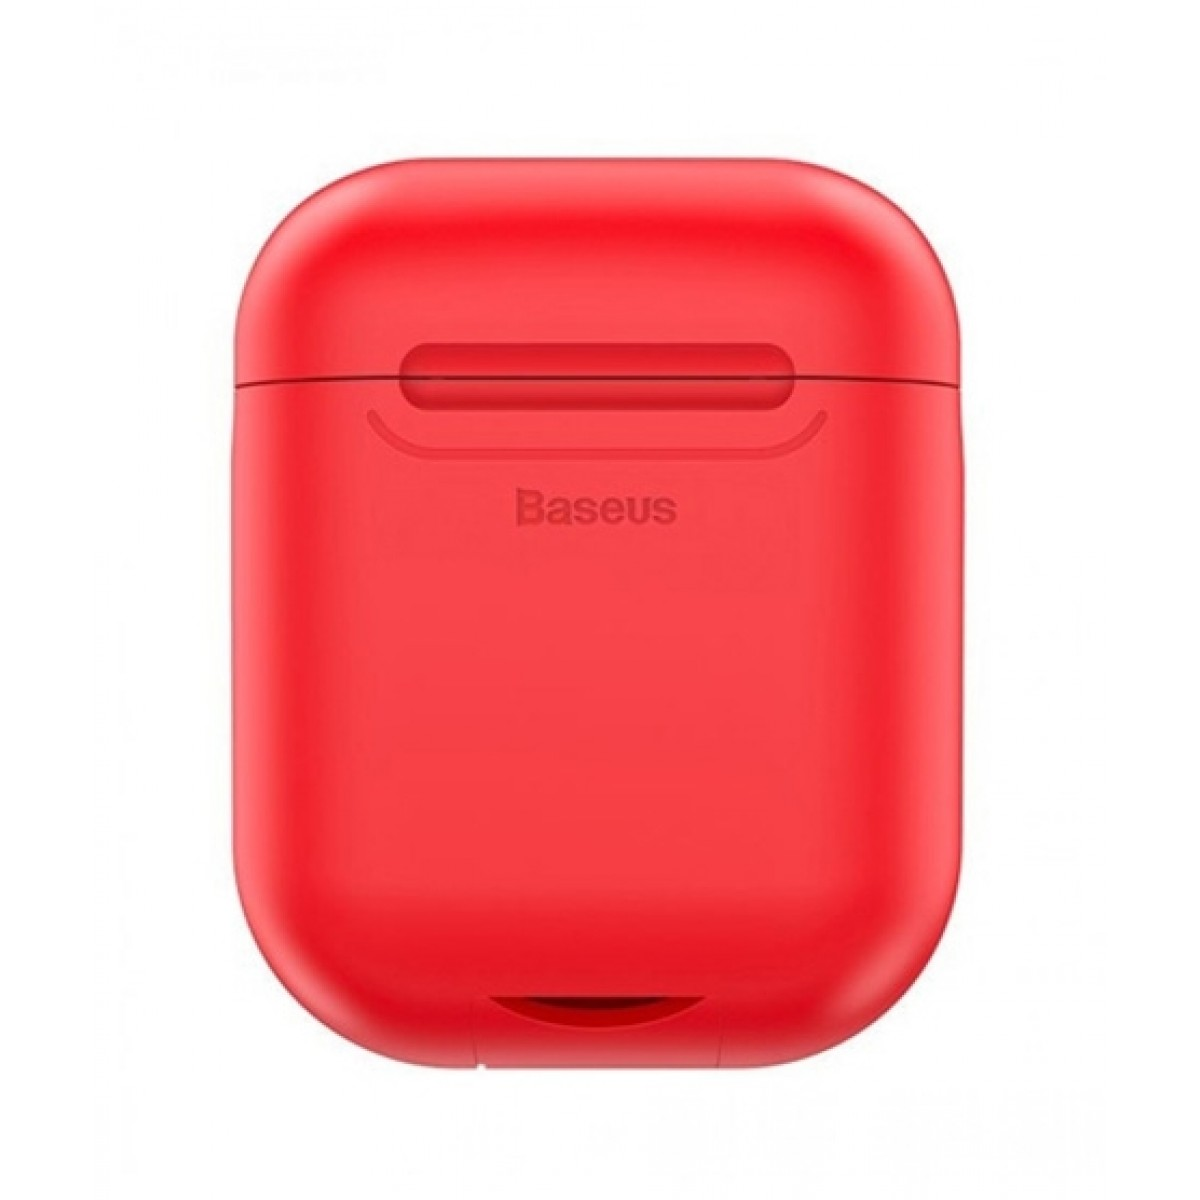 Baseus Wireless 5V/1A Charging Case For Airpods Red